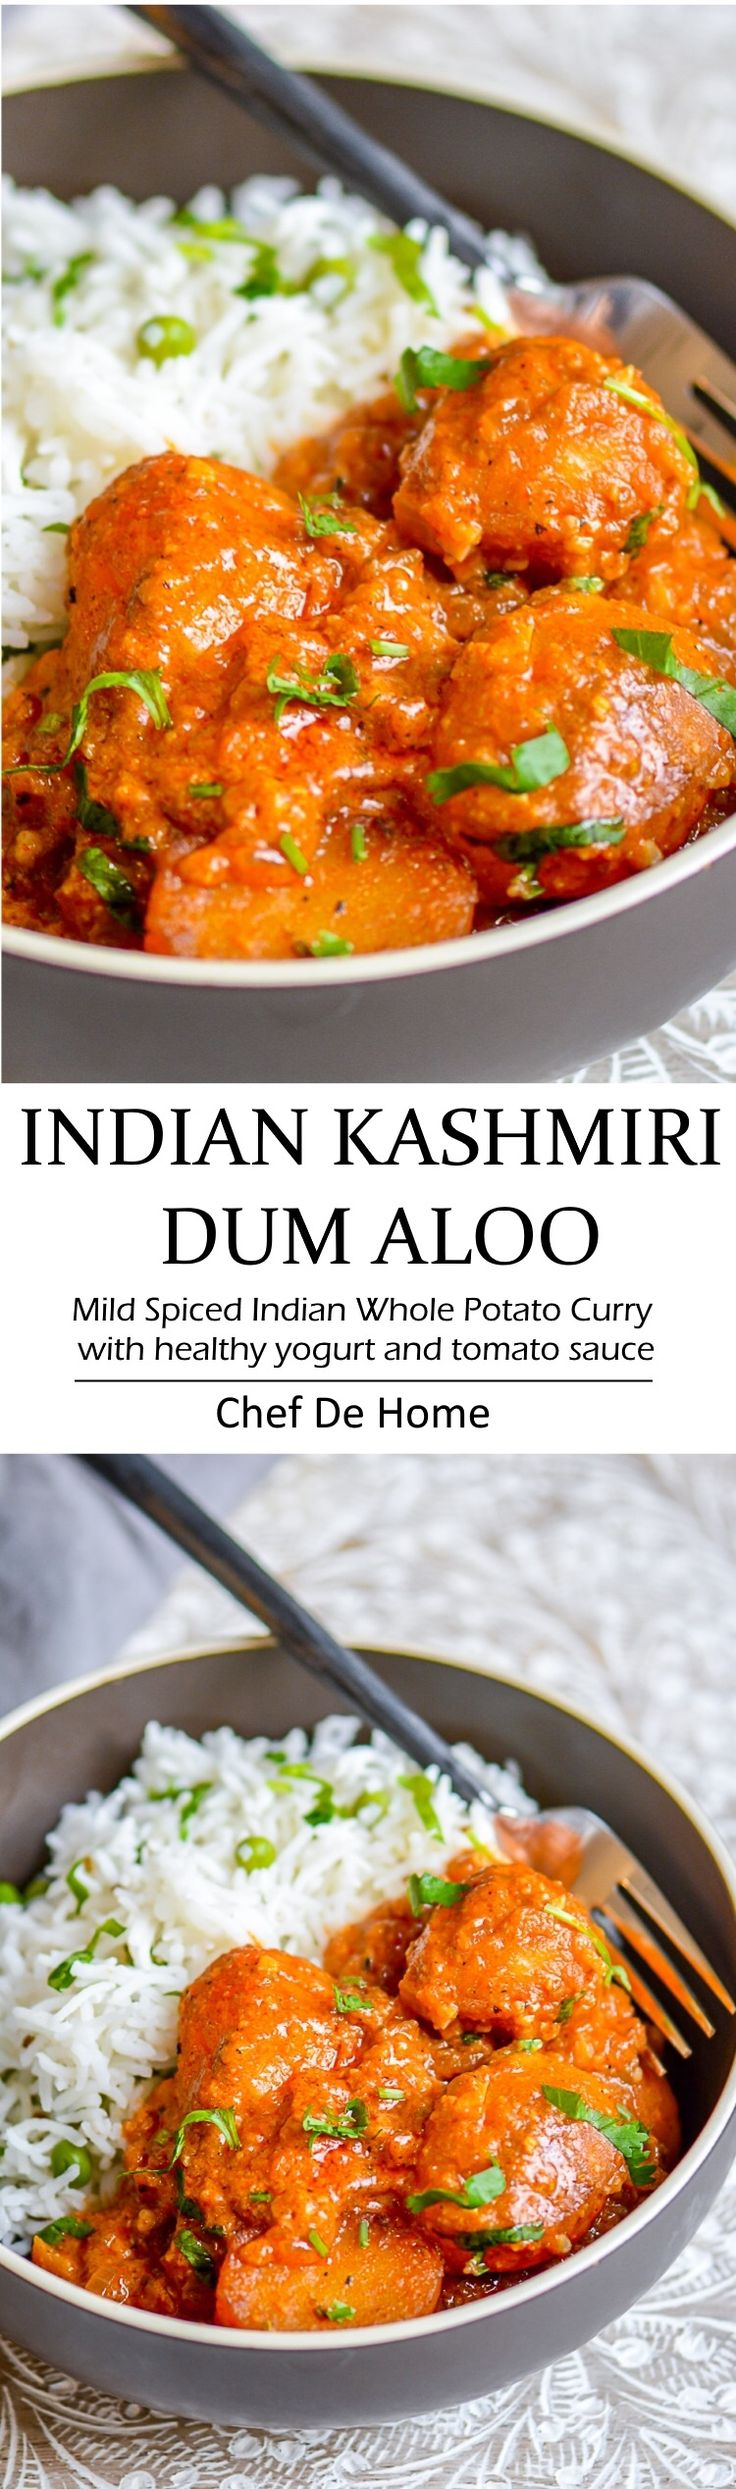 42 best healthy indian recipes images on pinterest indian indian kashmiri dum aloo a mild spiced whole potatoes aloo curry cooked lite forumfinder Choice Image